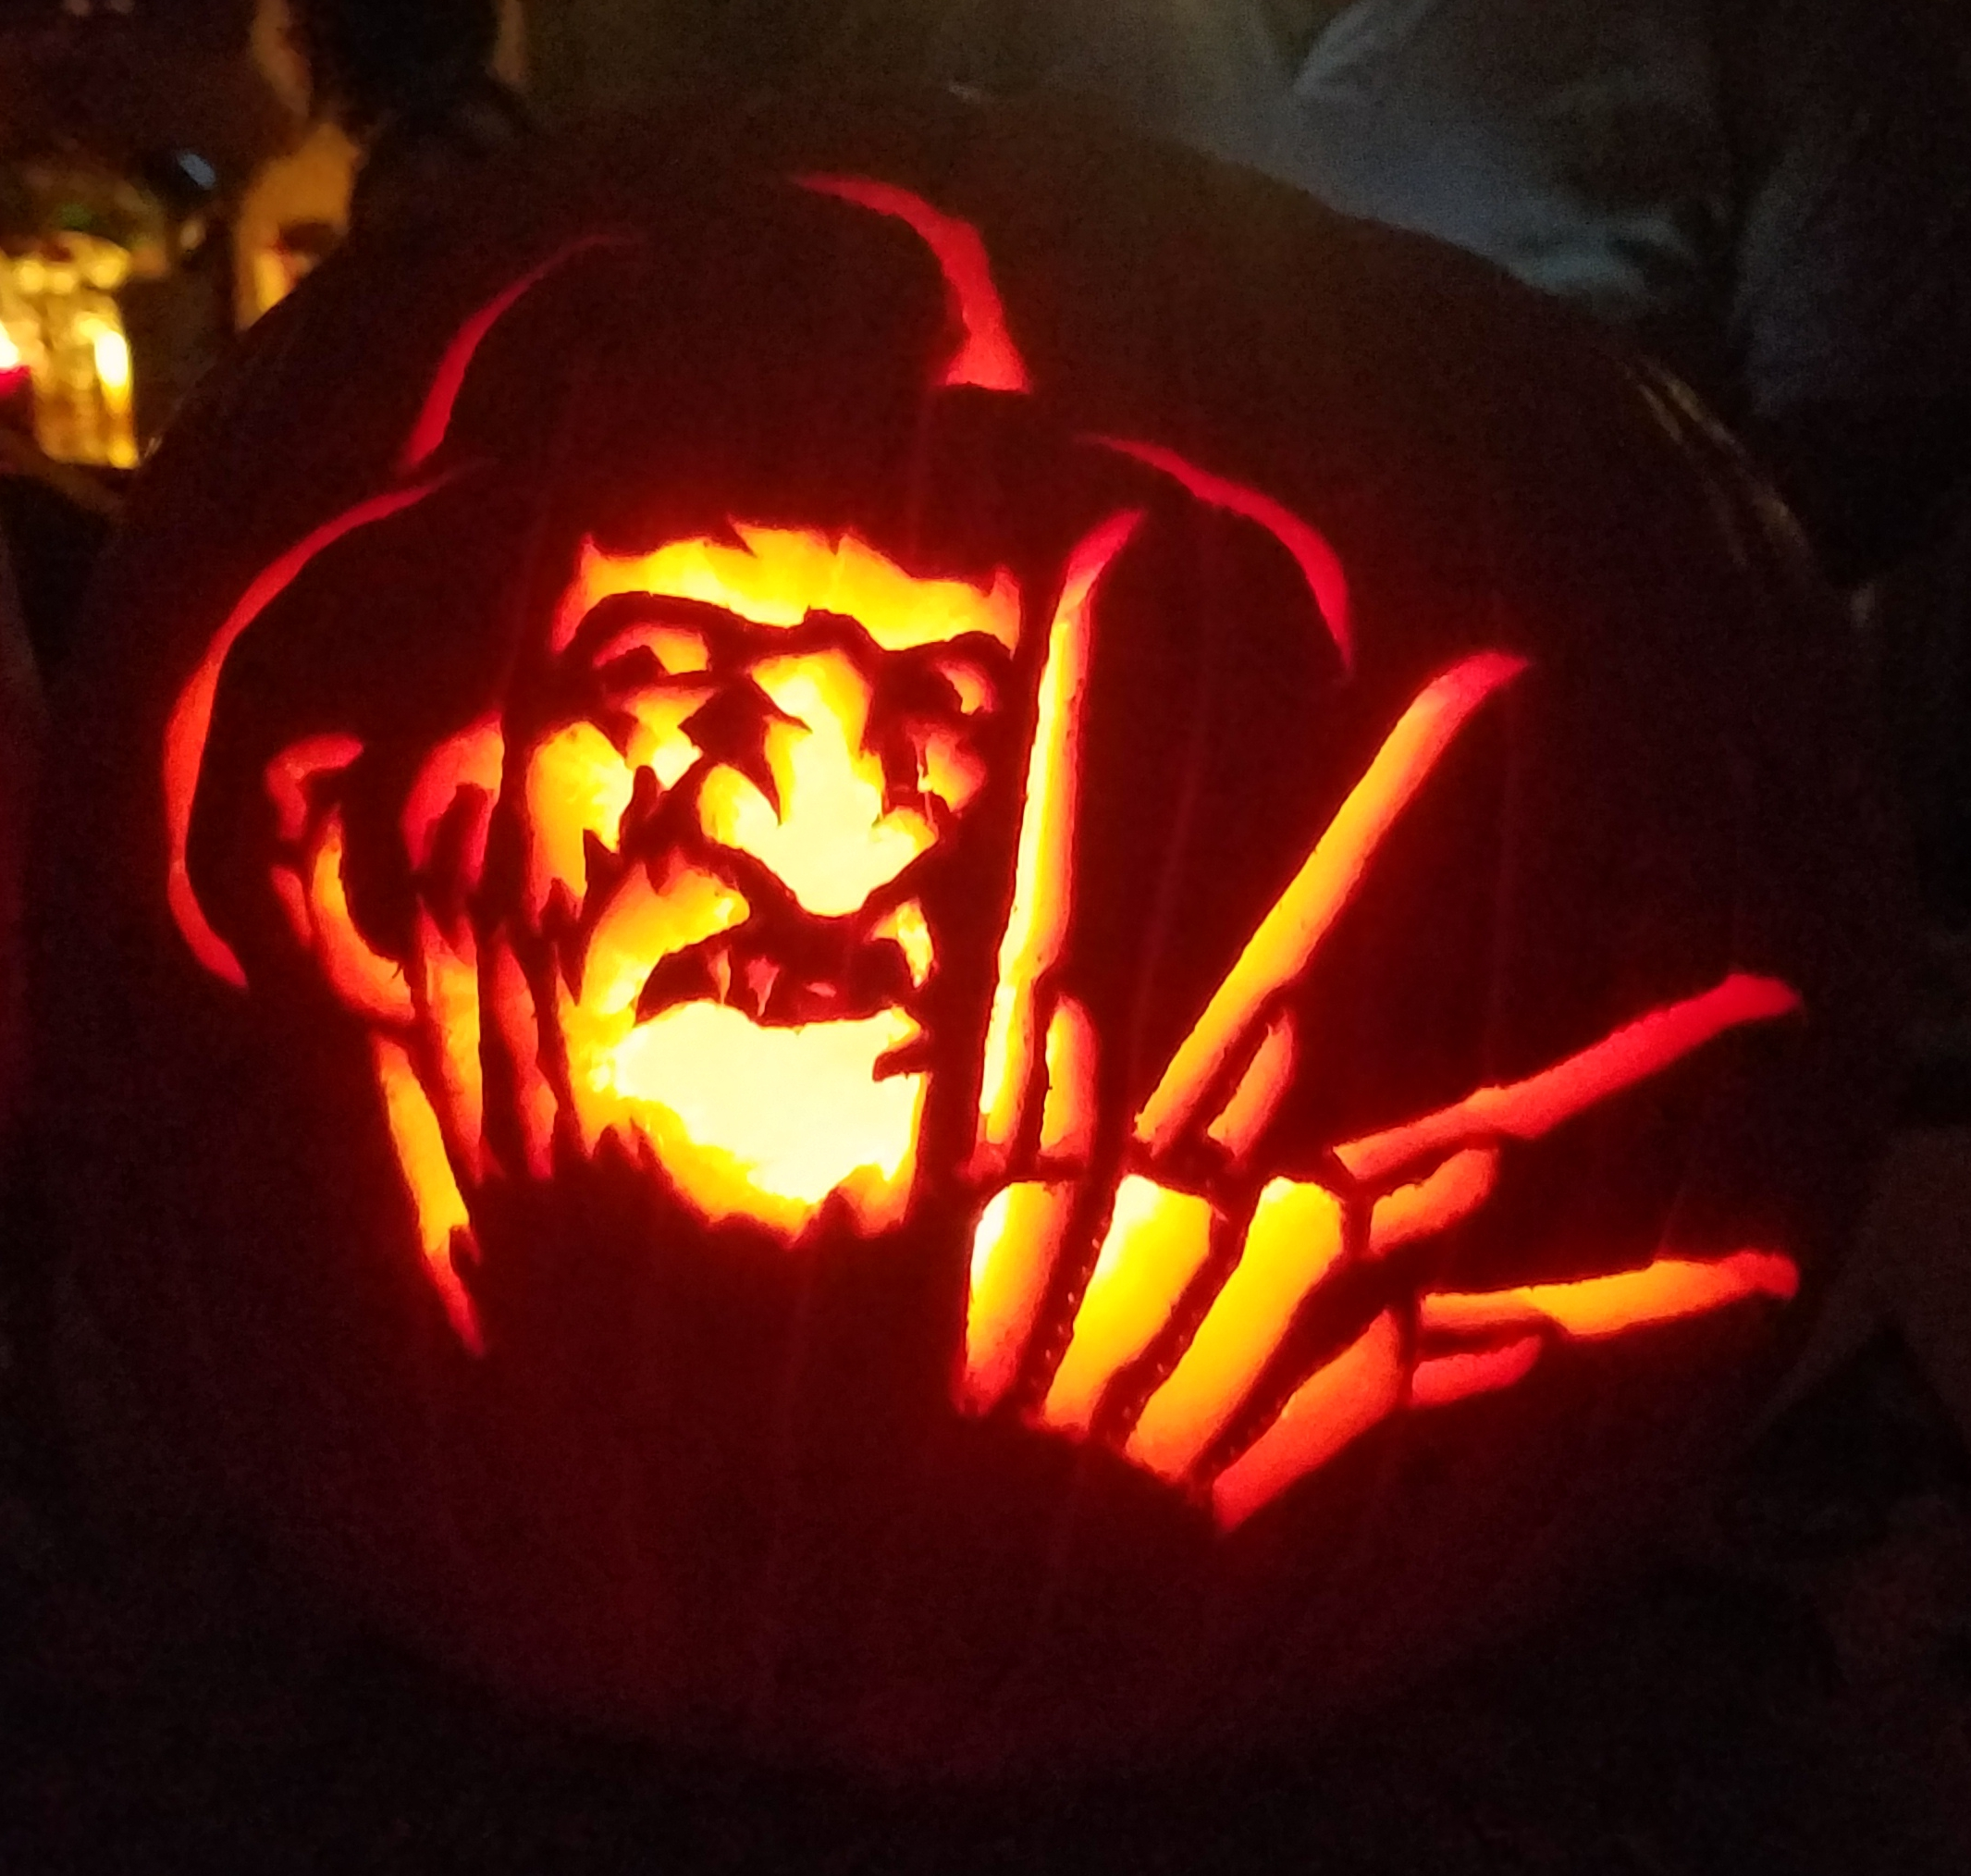 Freddy Krueger A Nightmare On Elm Street pumpkin